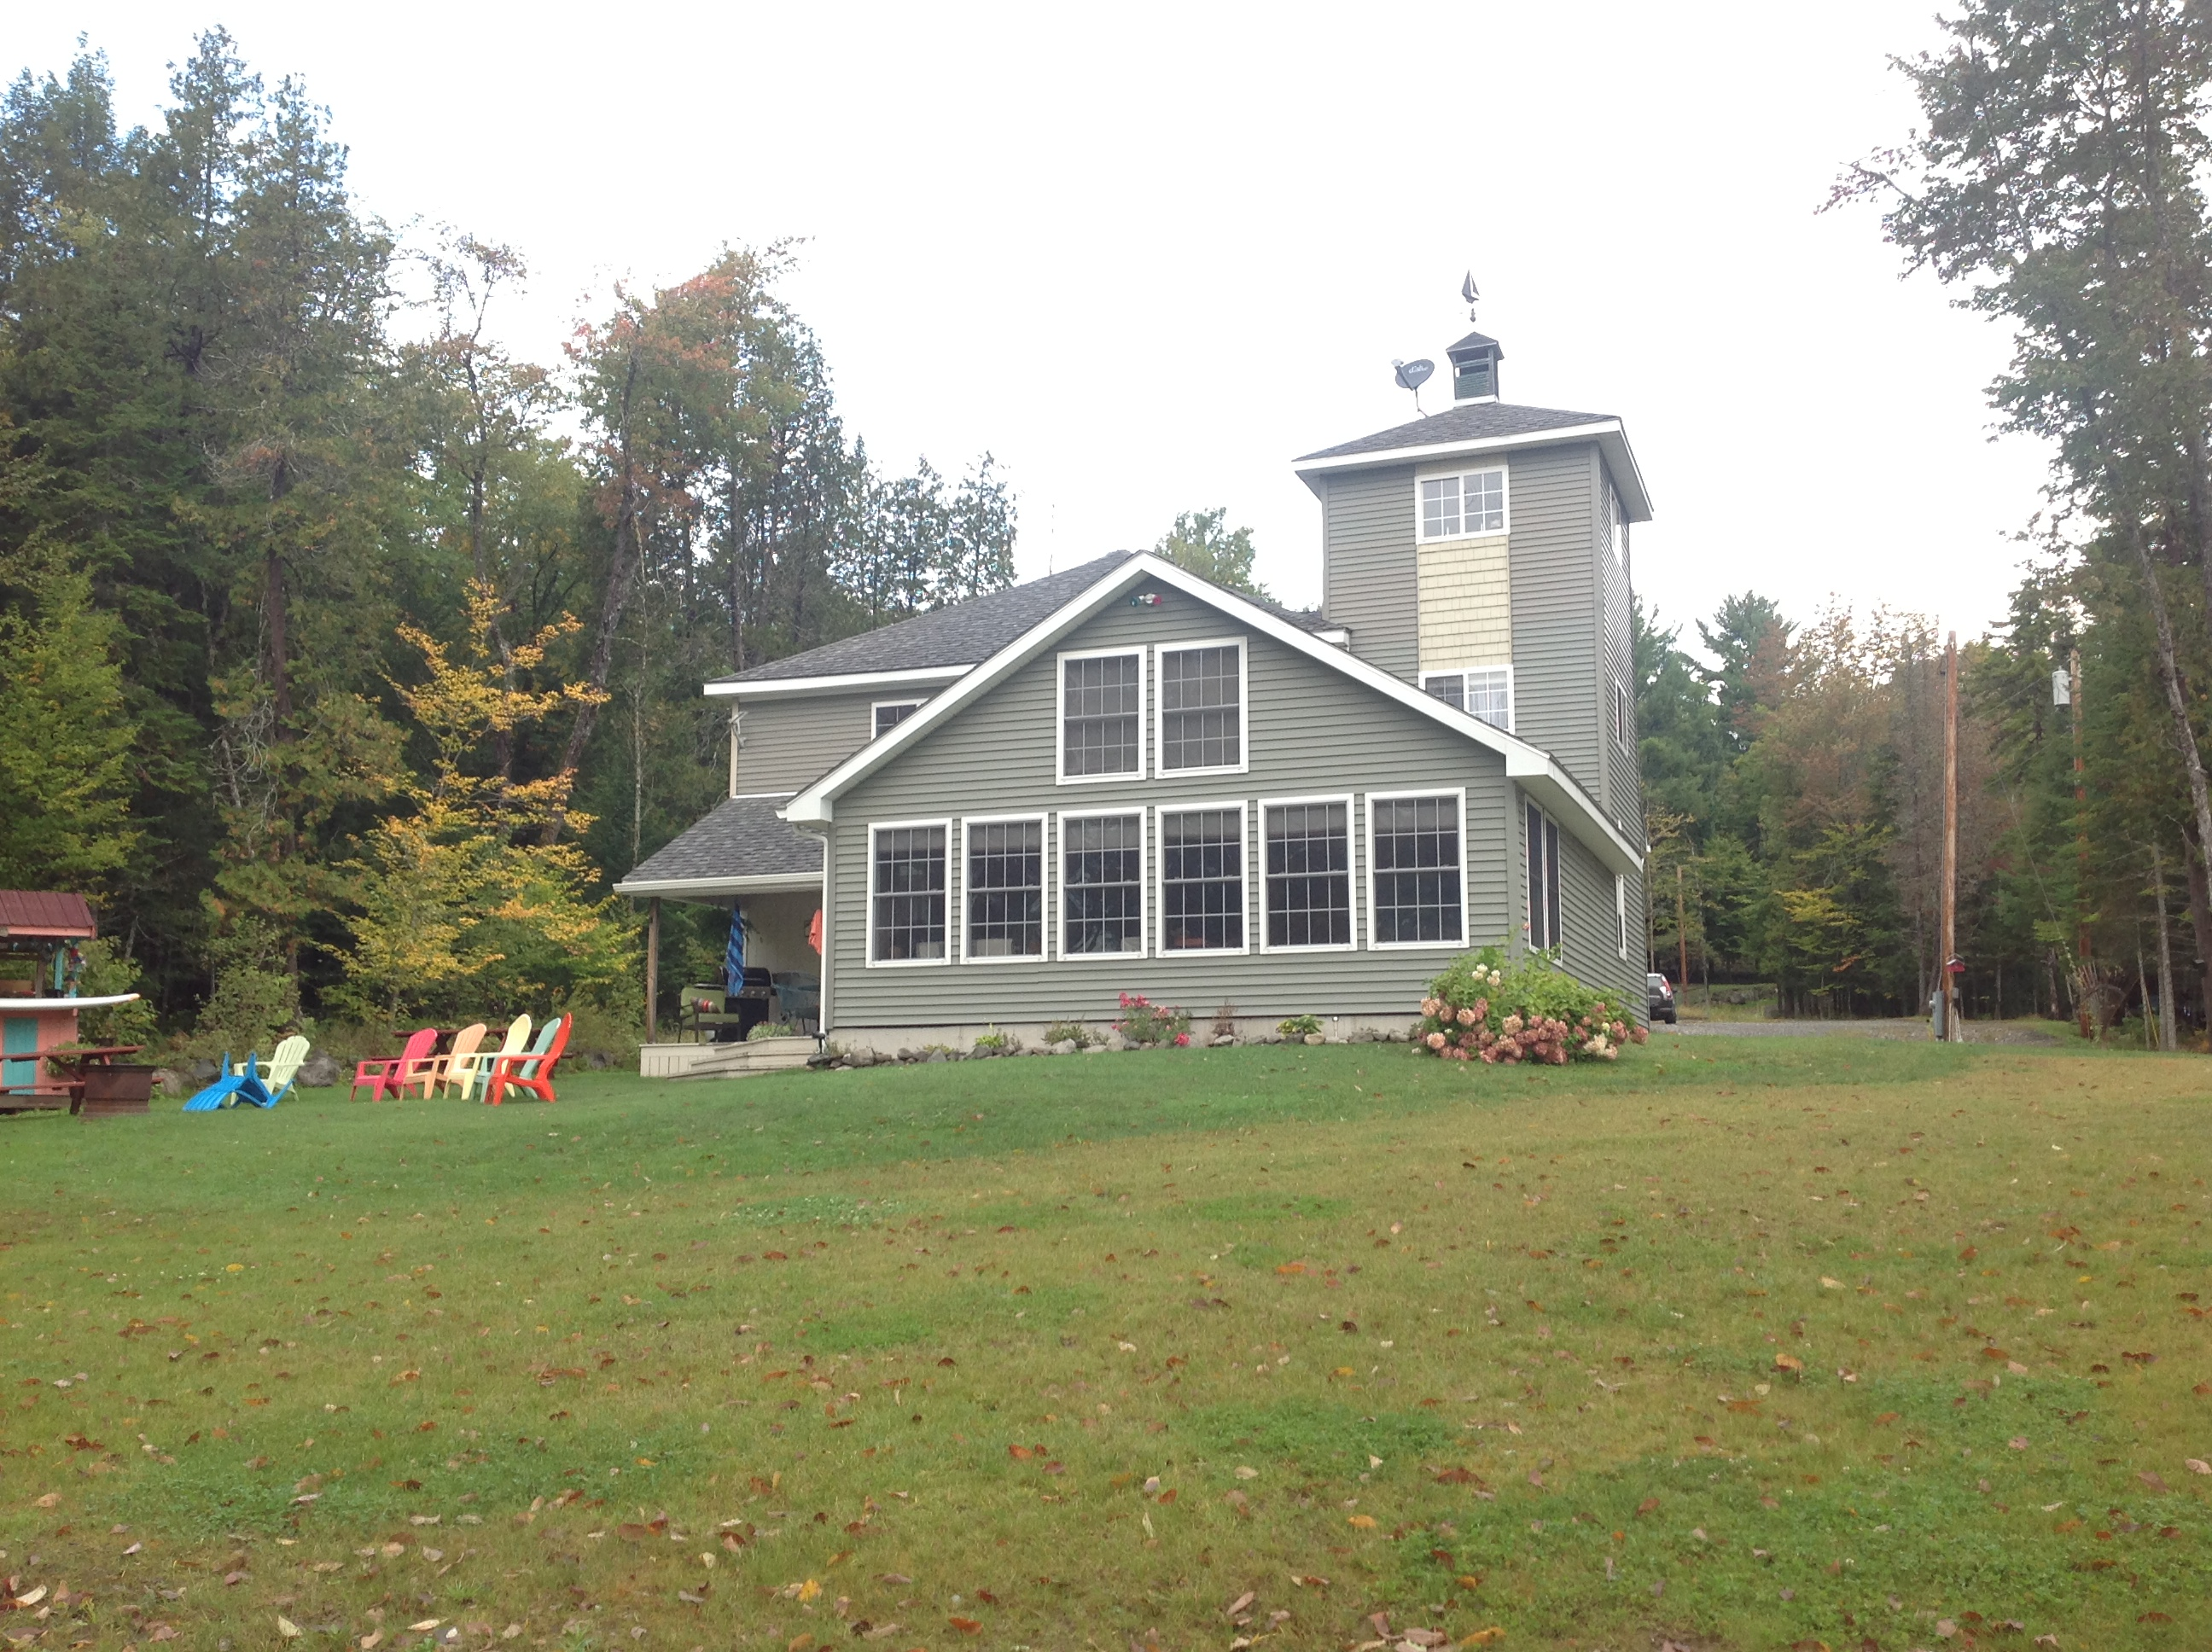 602 Bowerbank Road, Bowerbank, Maine 04426